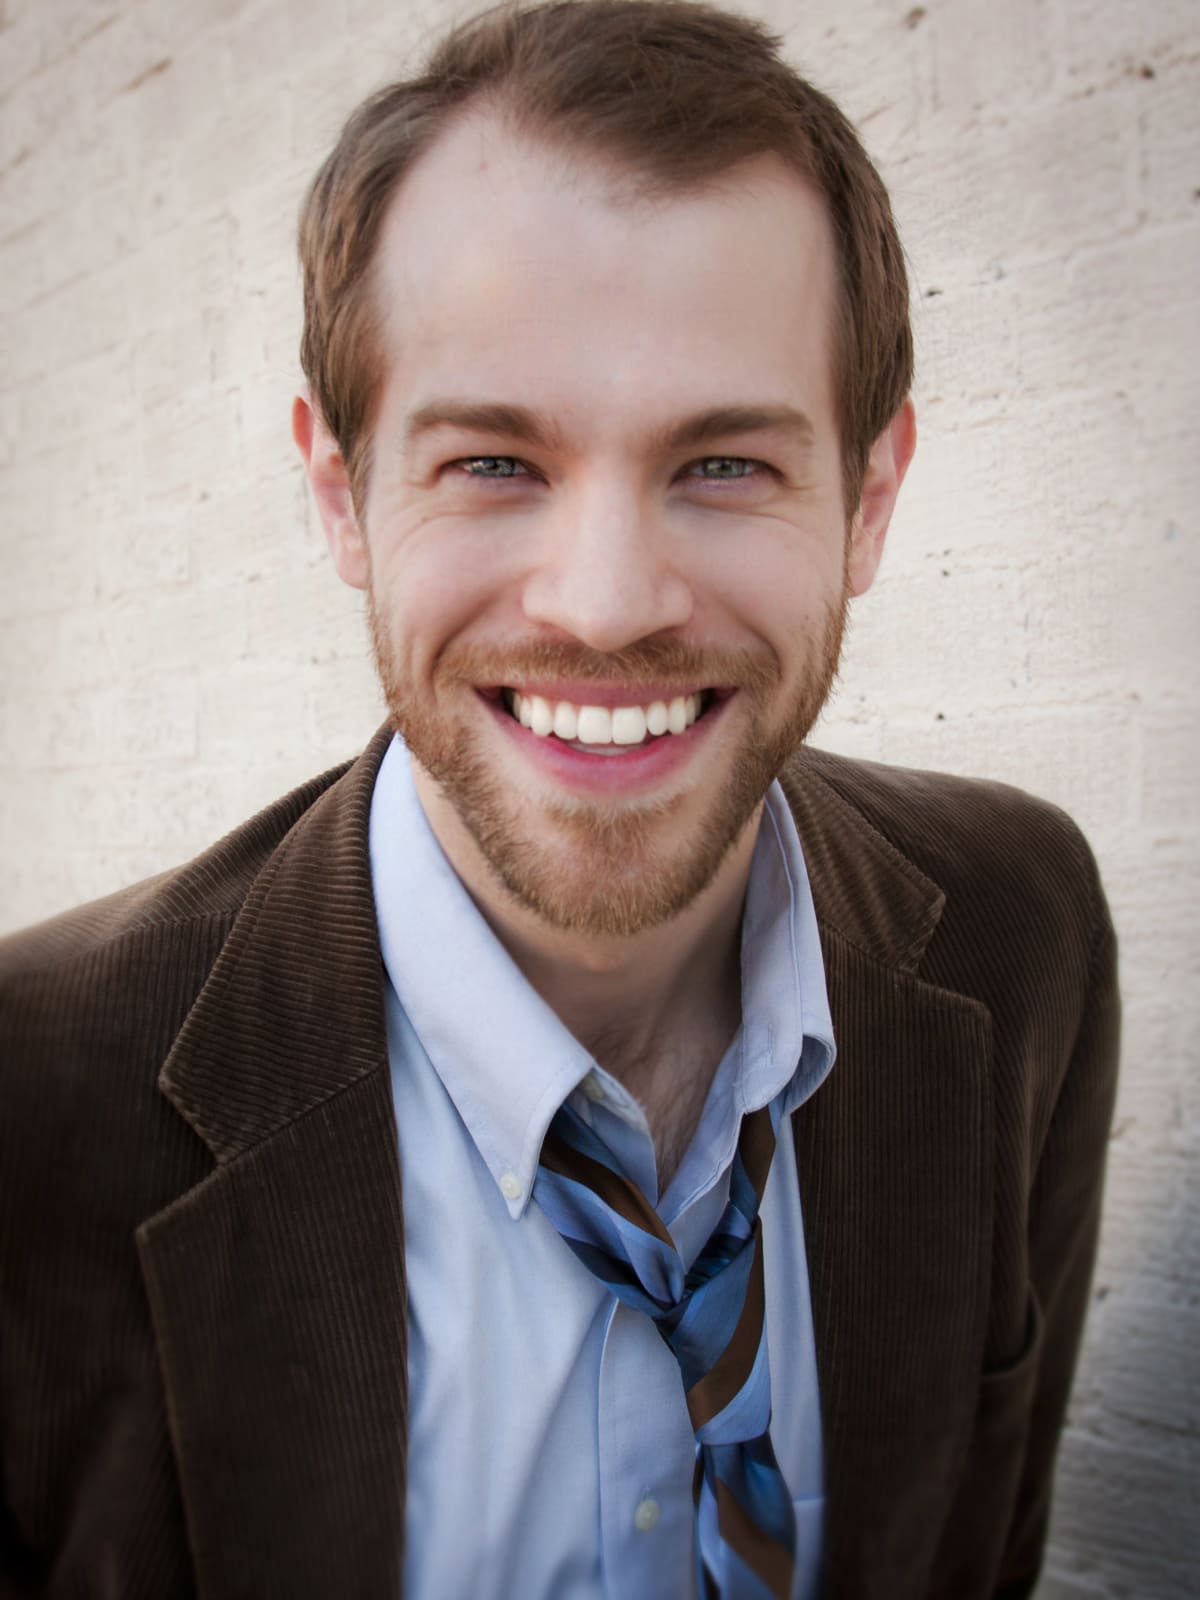 Dallas actor Alex Organ